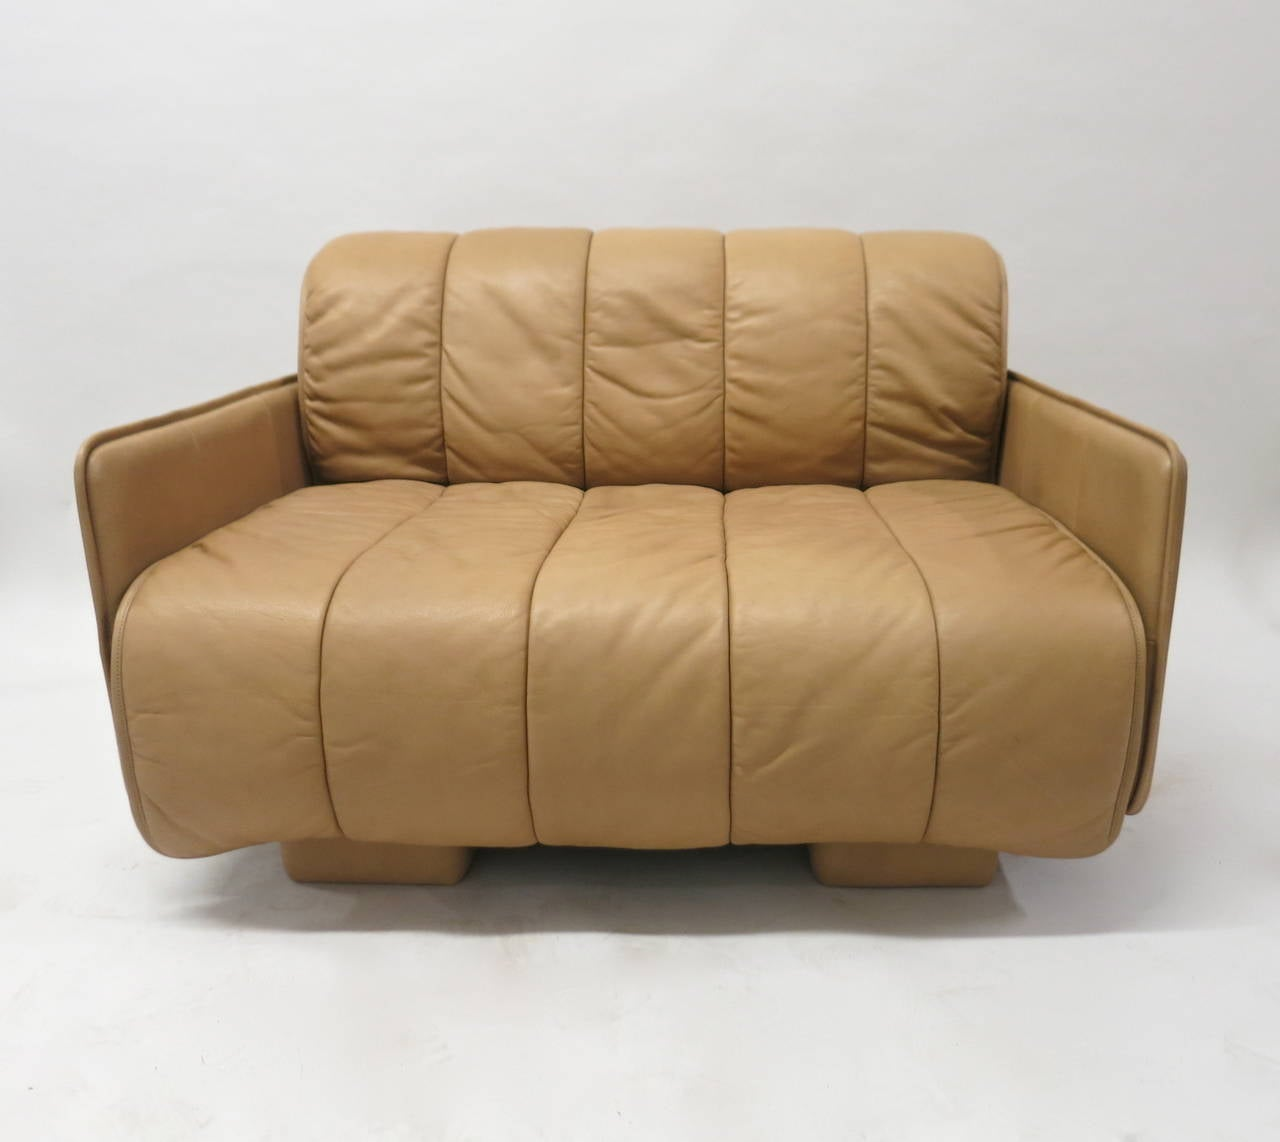 wide lounge chair in leather by de sede switzerland 1986